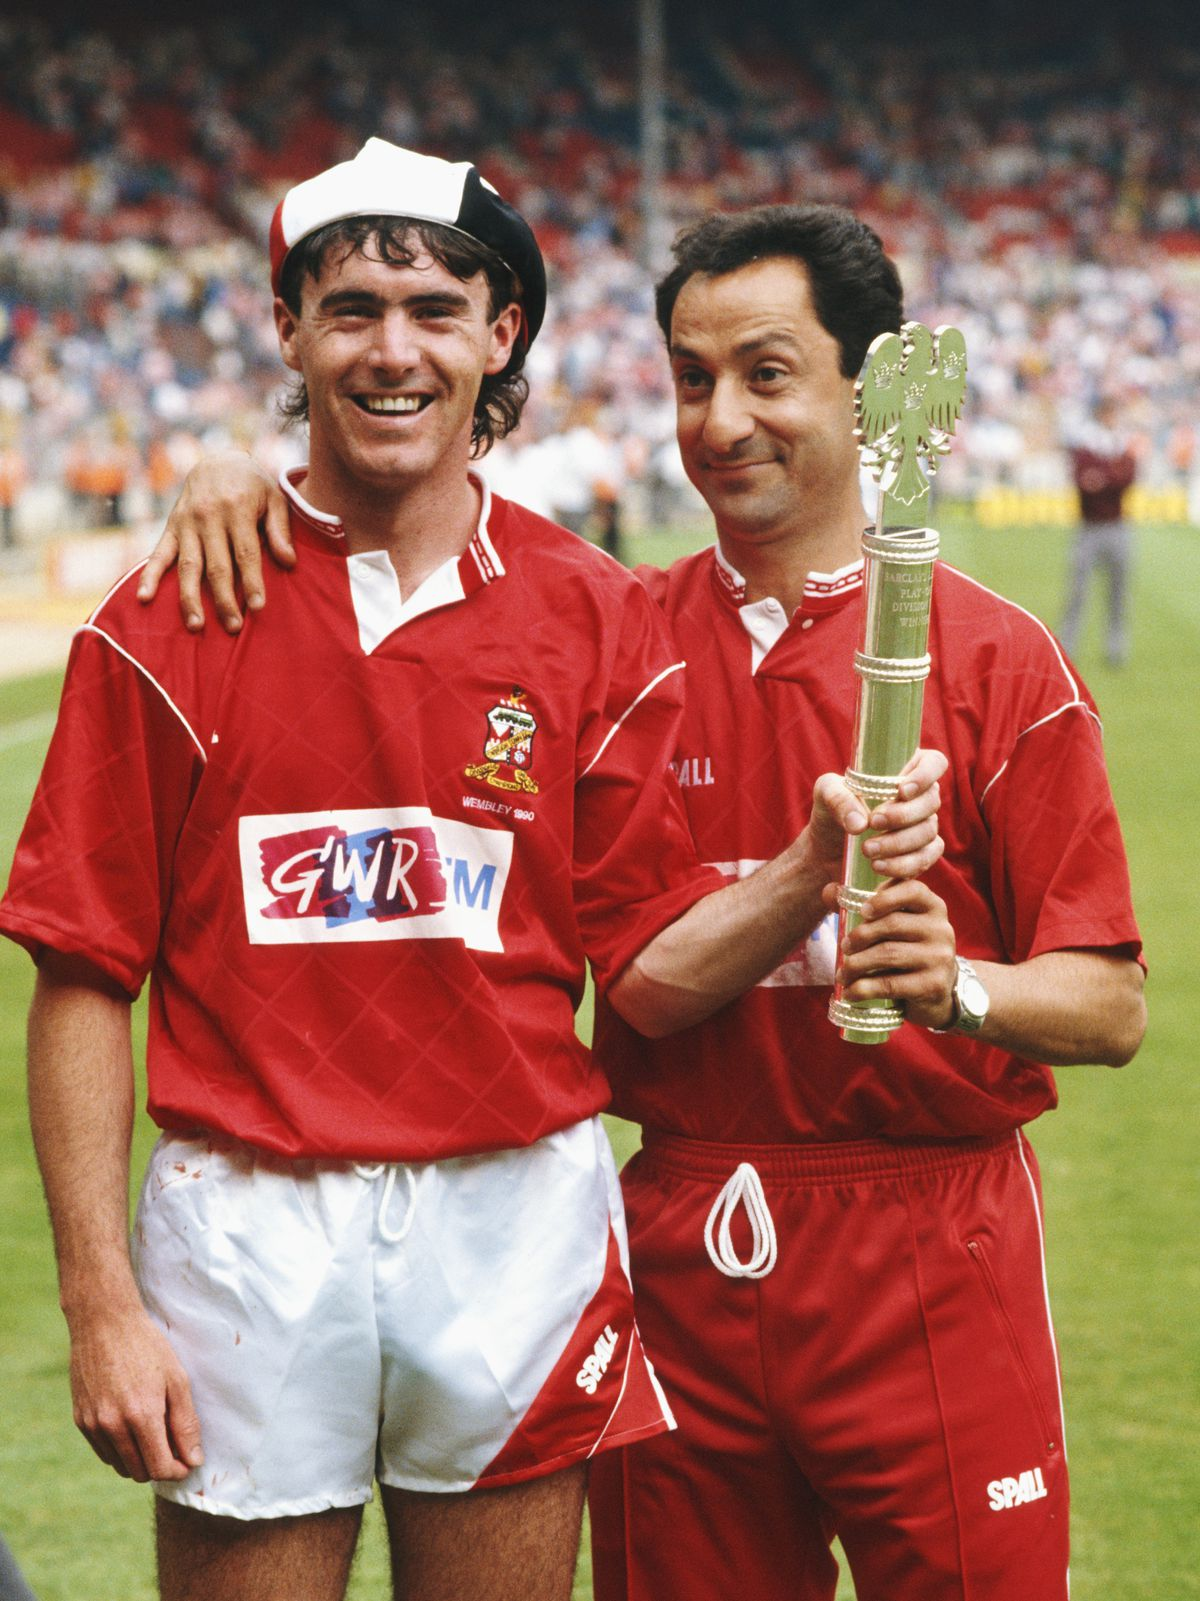 Swindon Town Division Two play off winners 1990